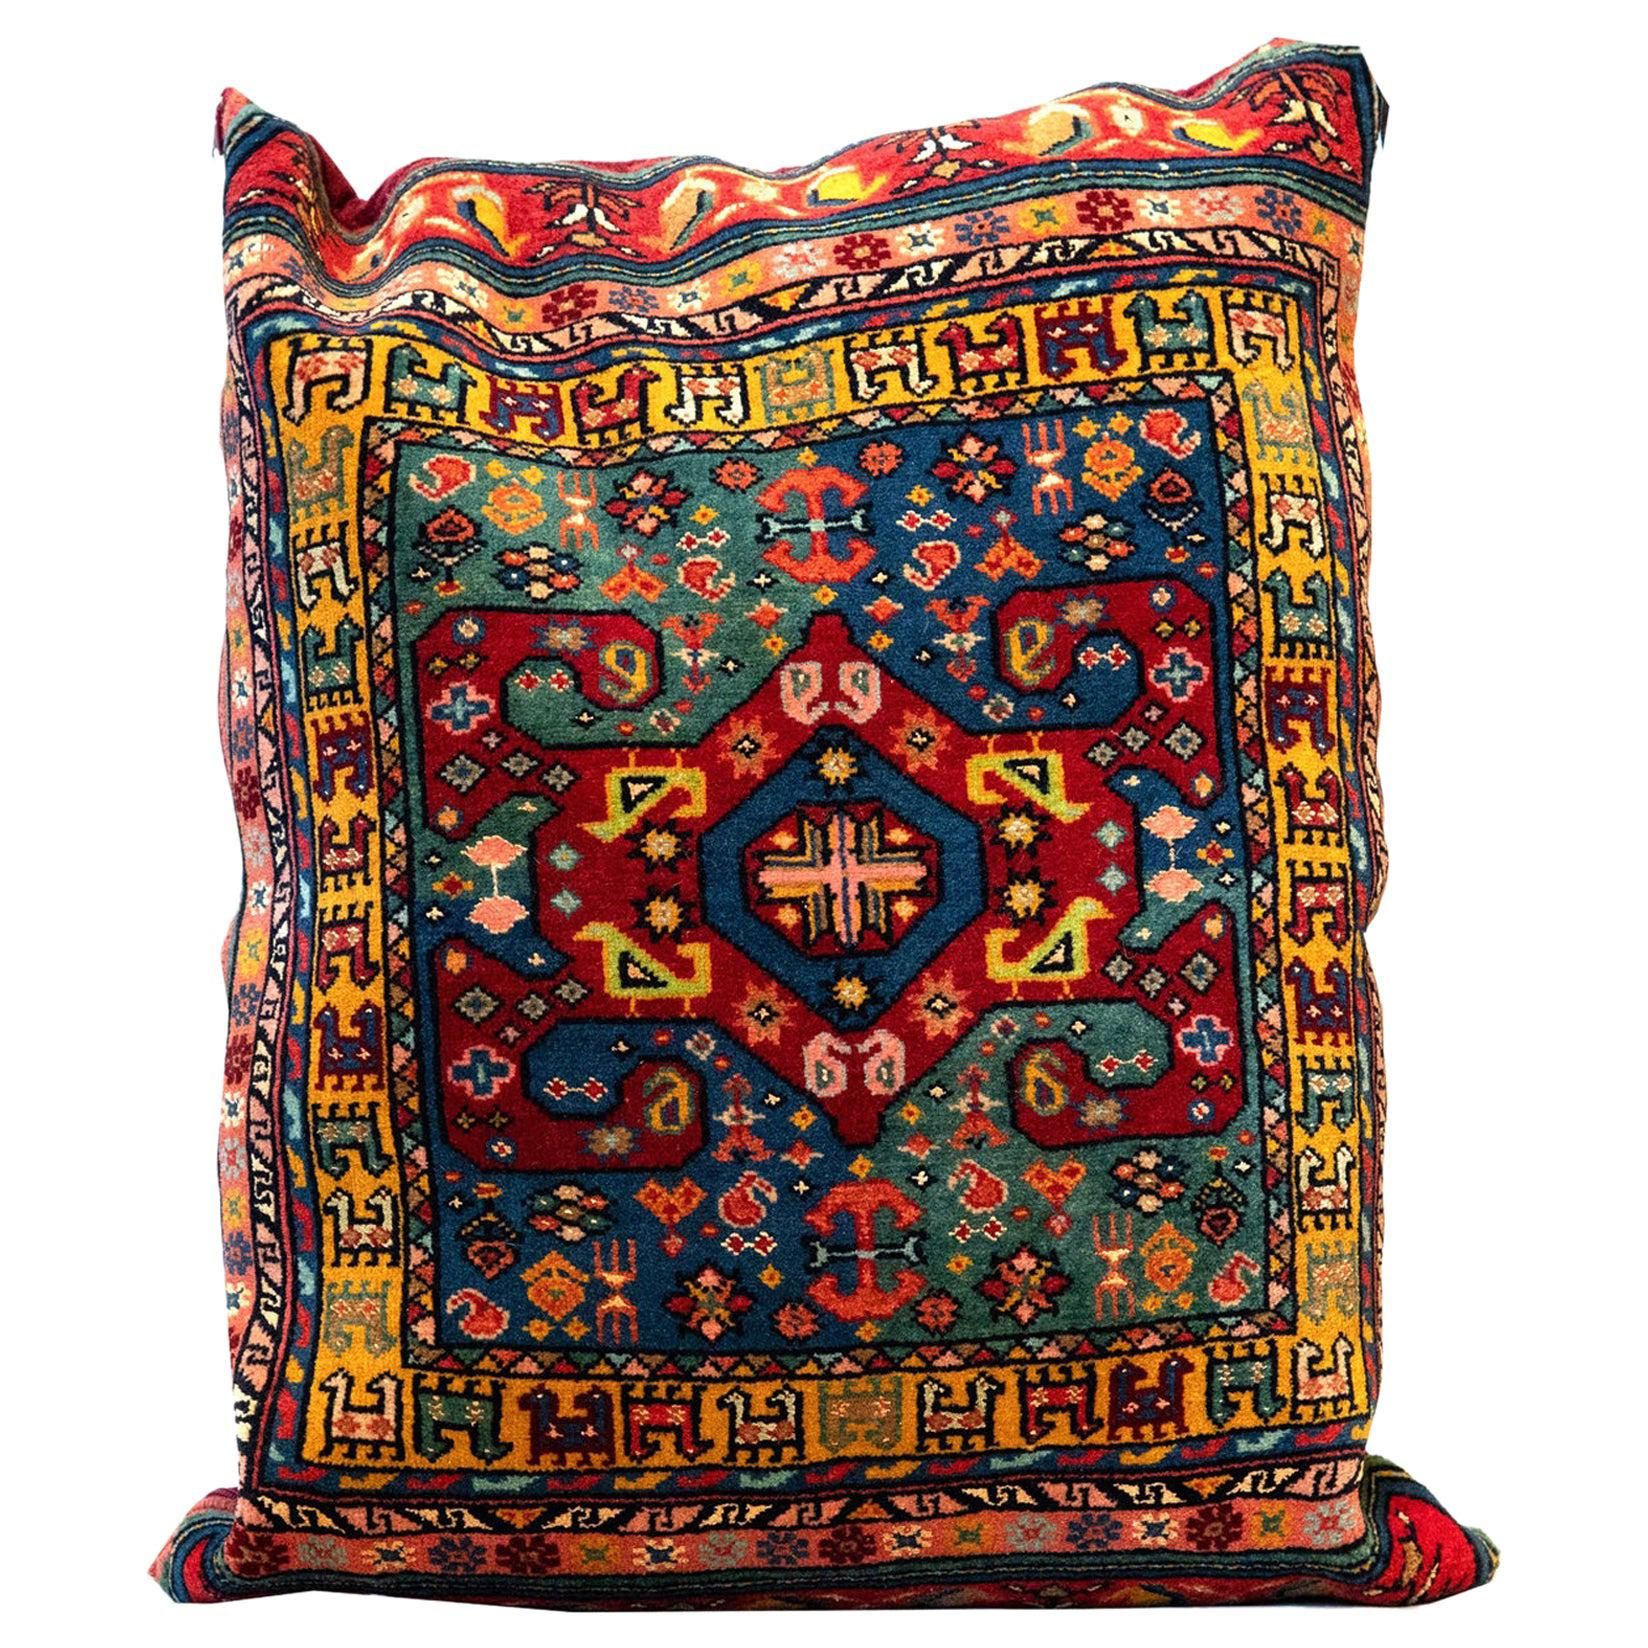 Handmade Tribal Pillow Cover, Traditional Pillow Carpet Floor Cushion Cover